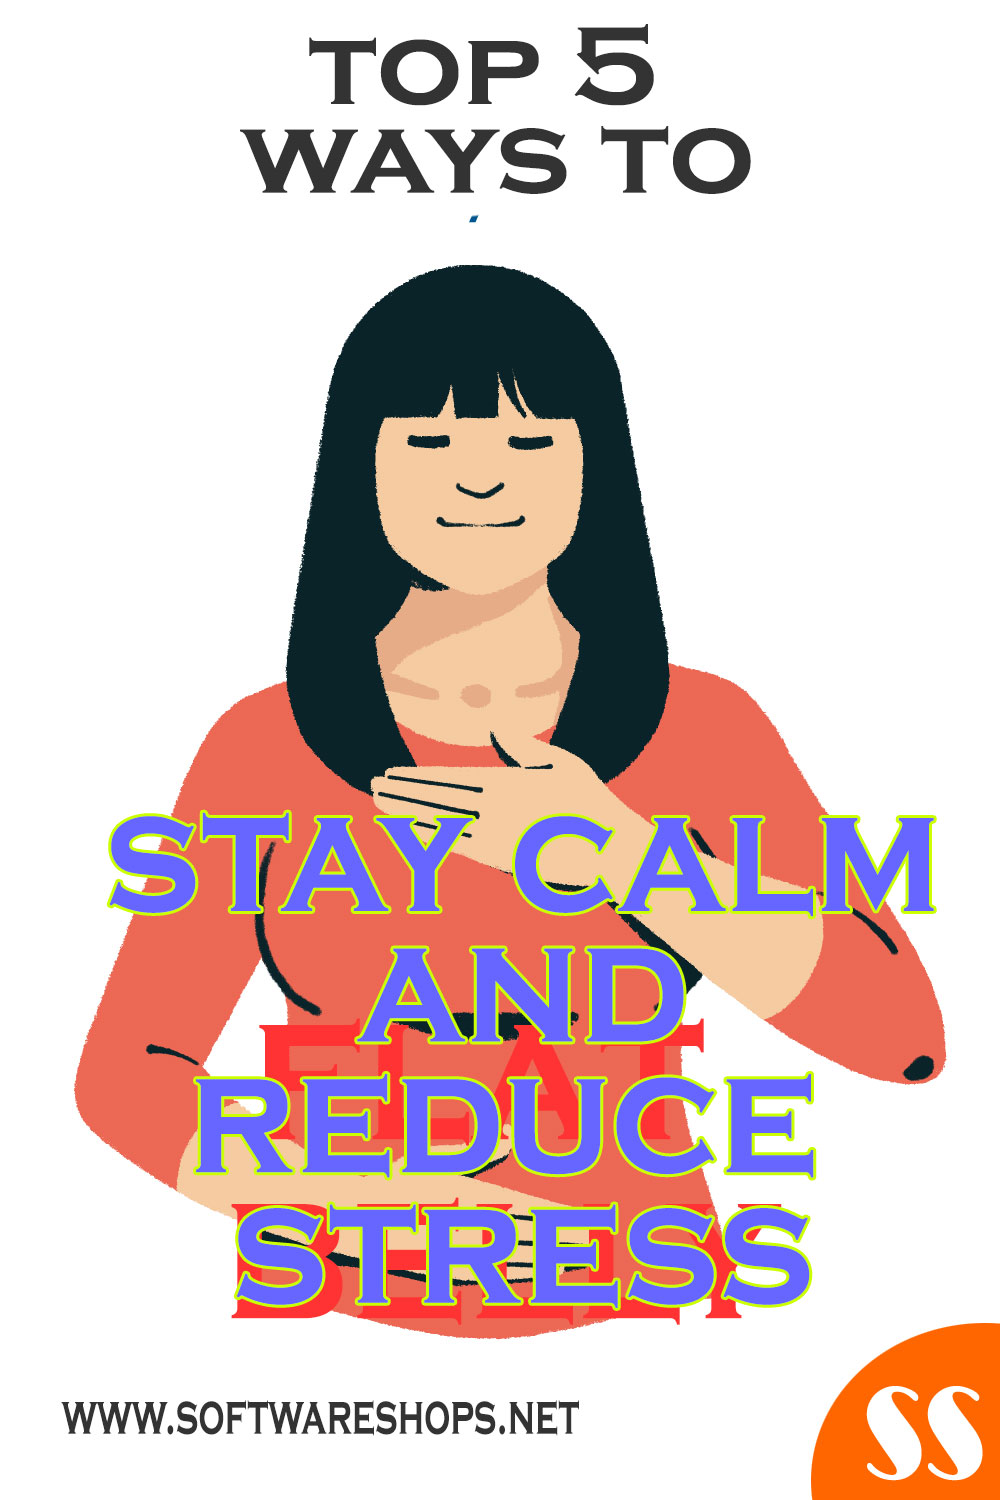 Top 5 ways to stay calm and reduce stress